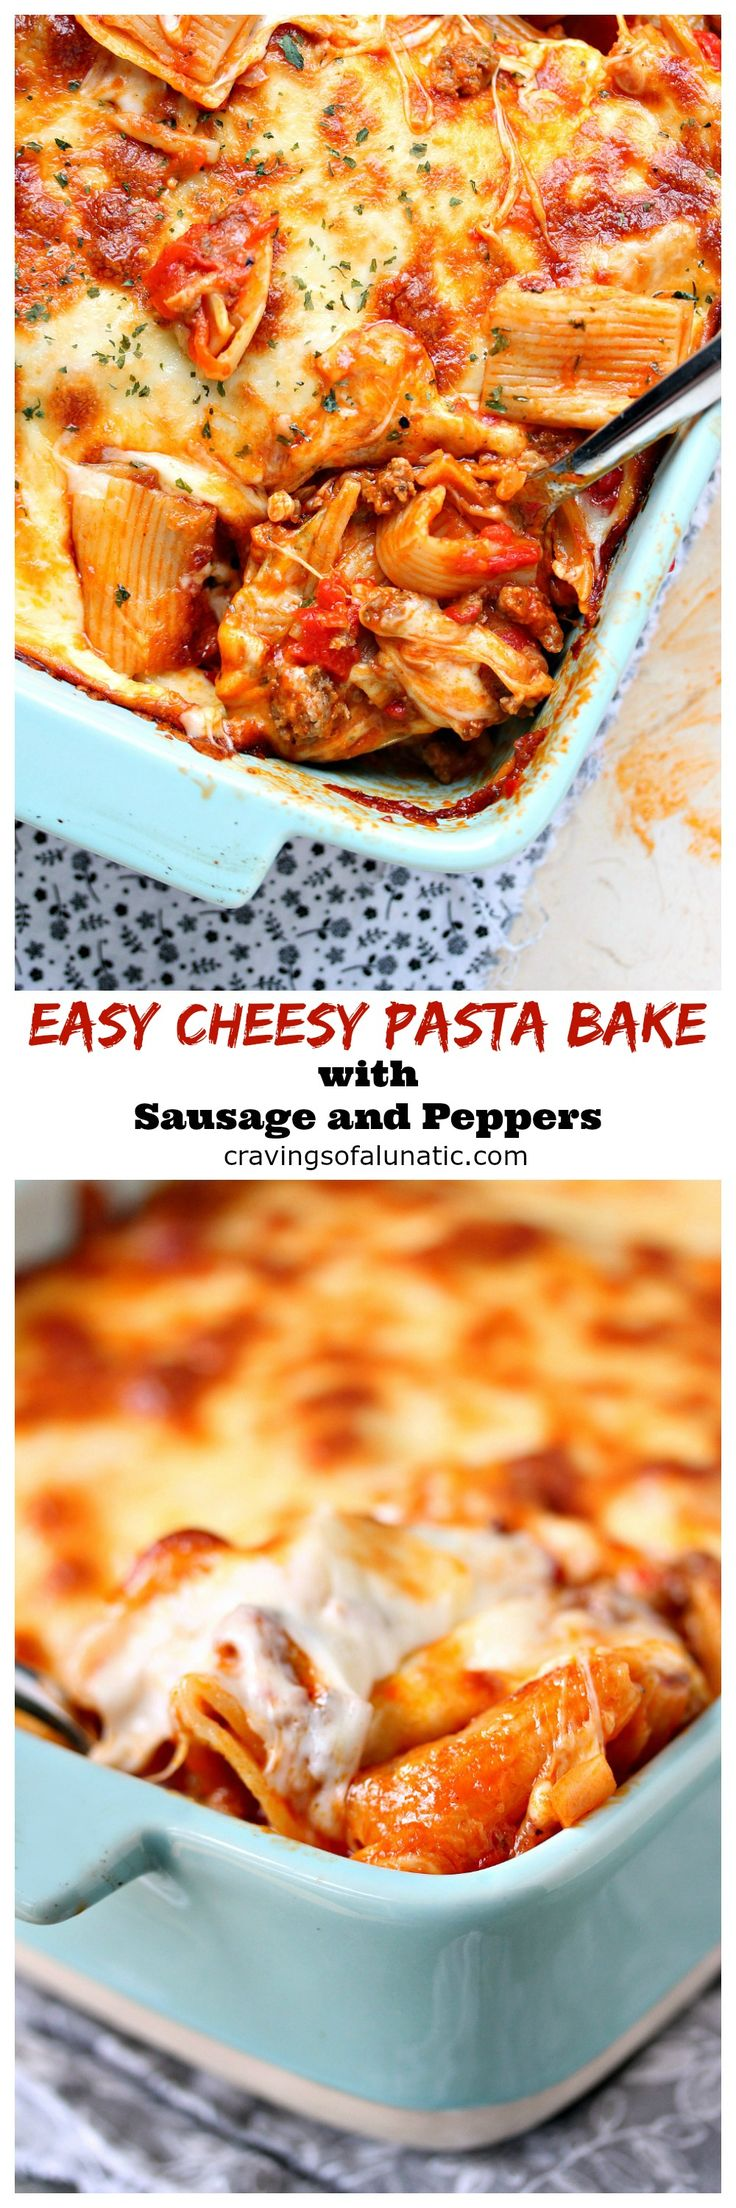 This Easy Cheesy Pasta Bake with Sausage and Peppers is the perfect simple recipe for busy nights. Easy to make, impossible to resist! #sponsored #cheese #pasta #dinner